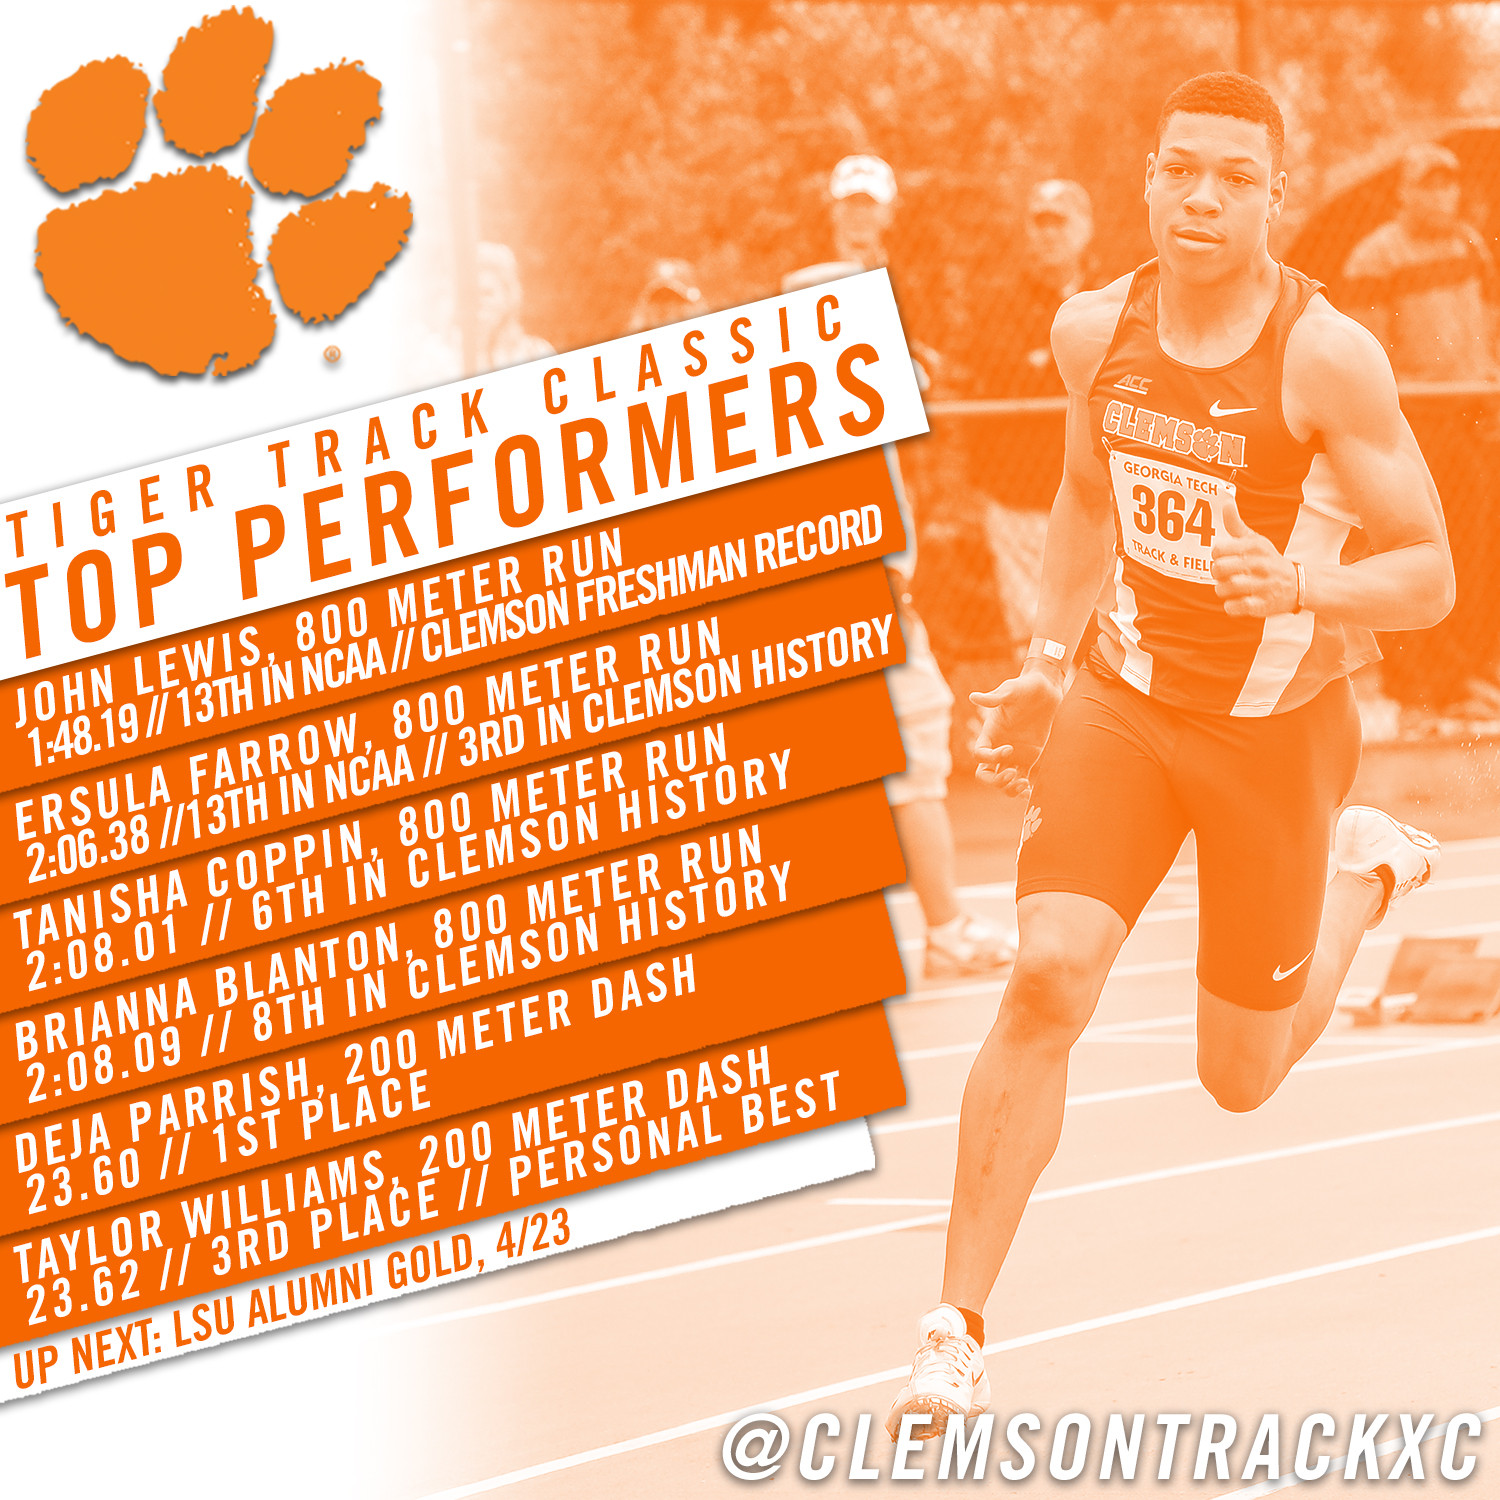 Clemson Rewrites History At Tiger Track Classic